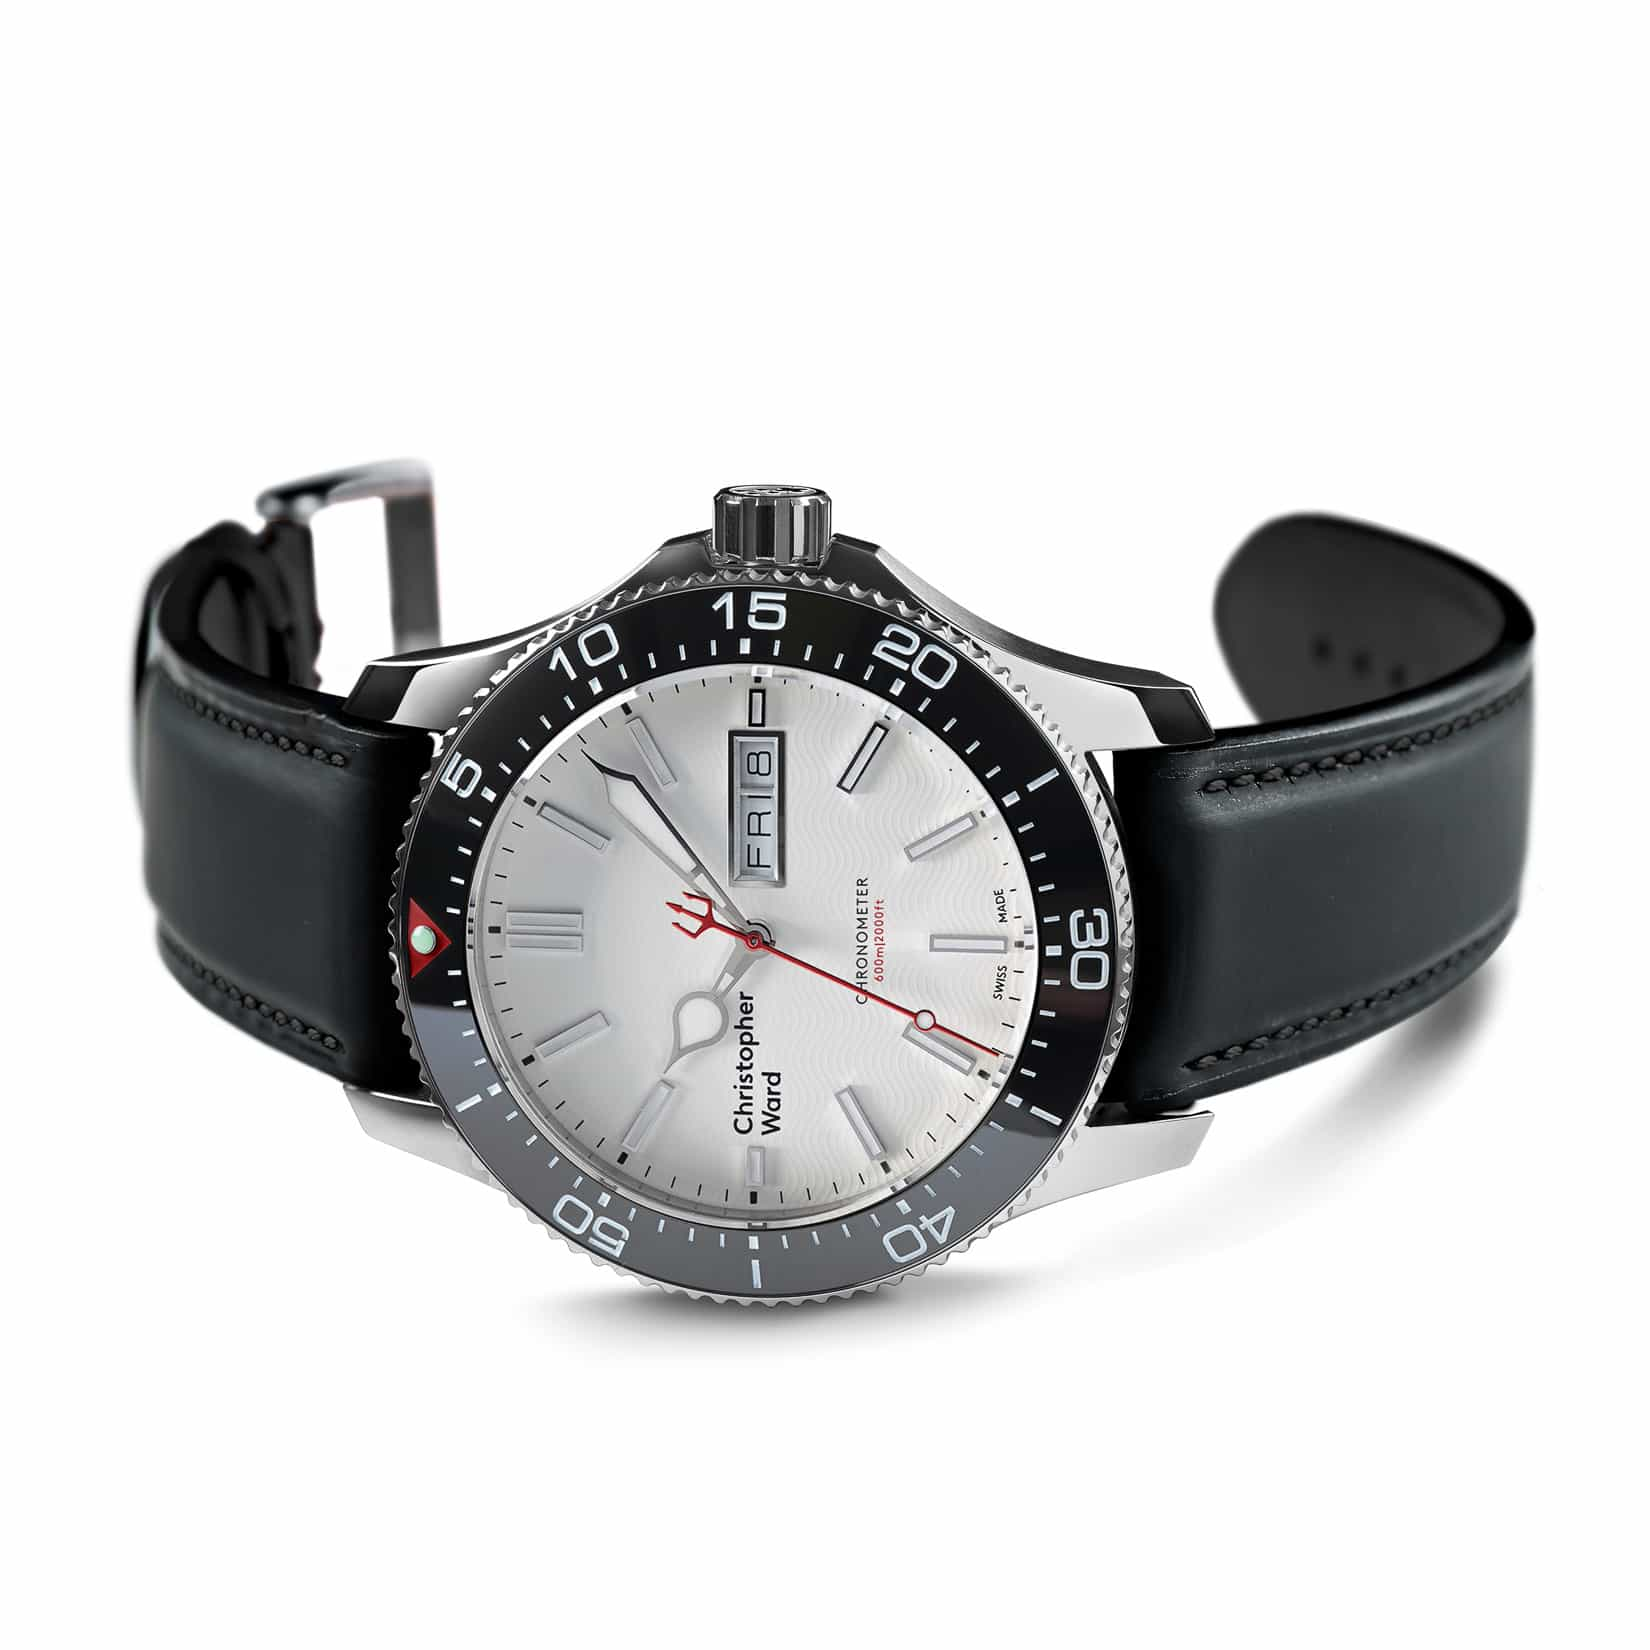 Christopher Ward C60 TRIDENT DAY DATE